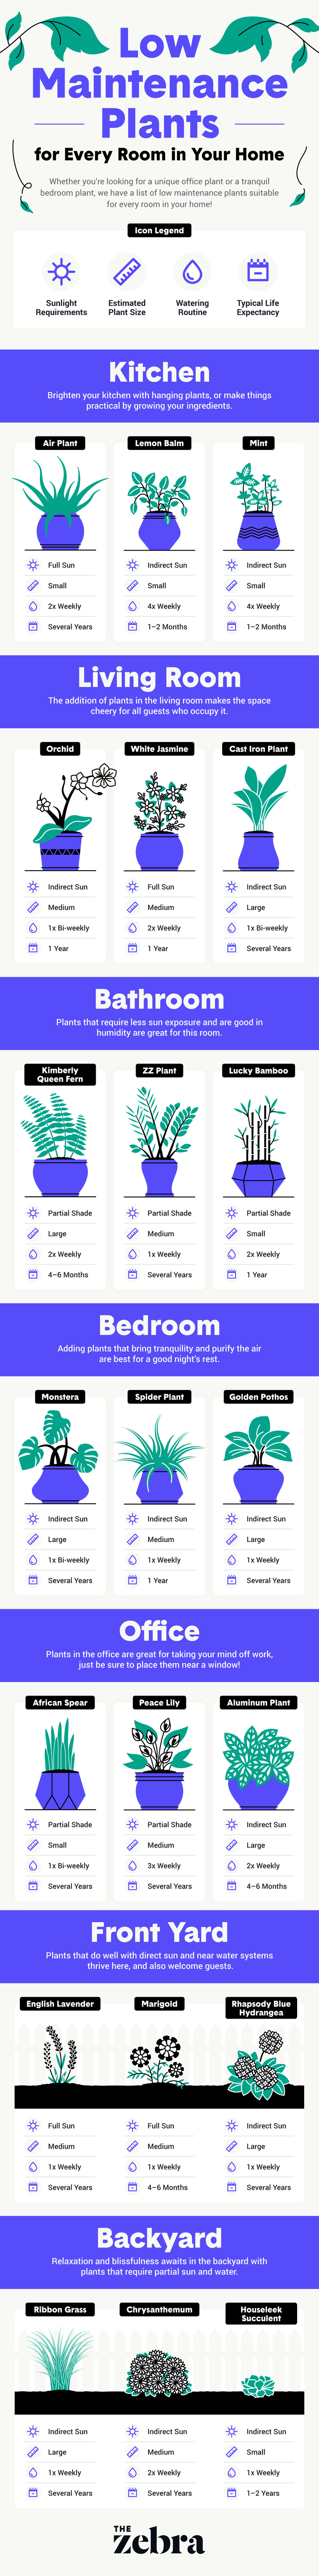 Low Maintenance House plants